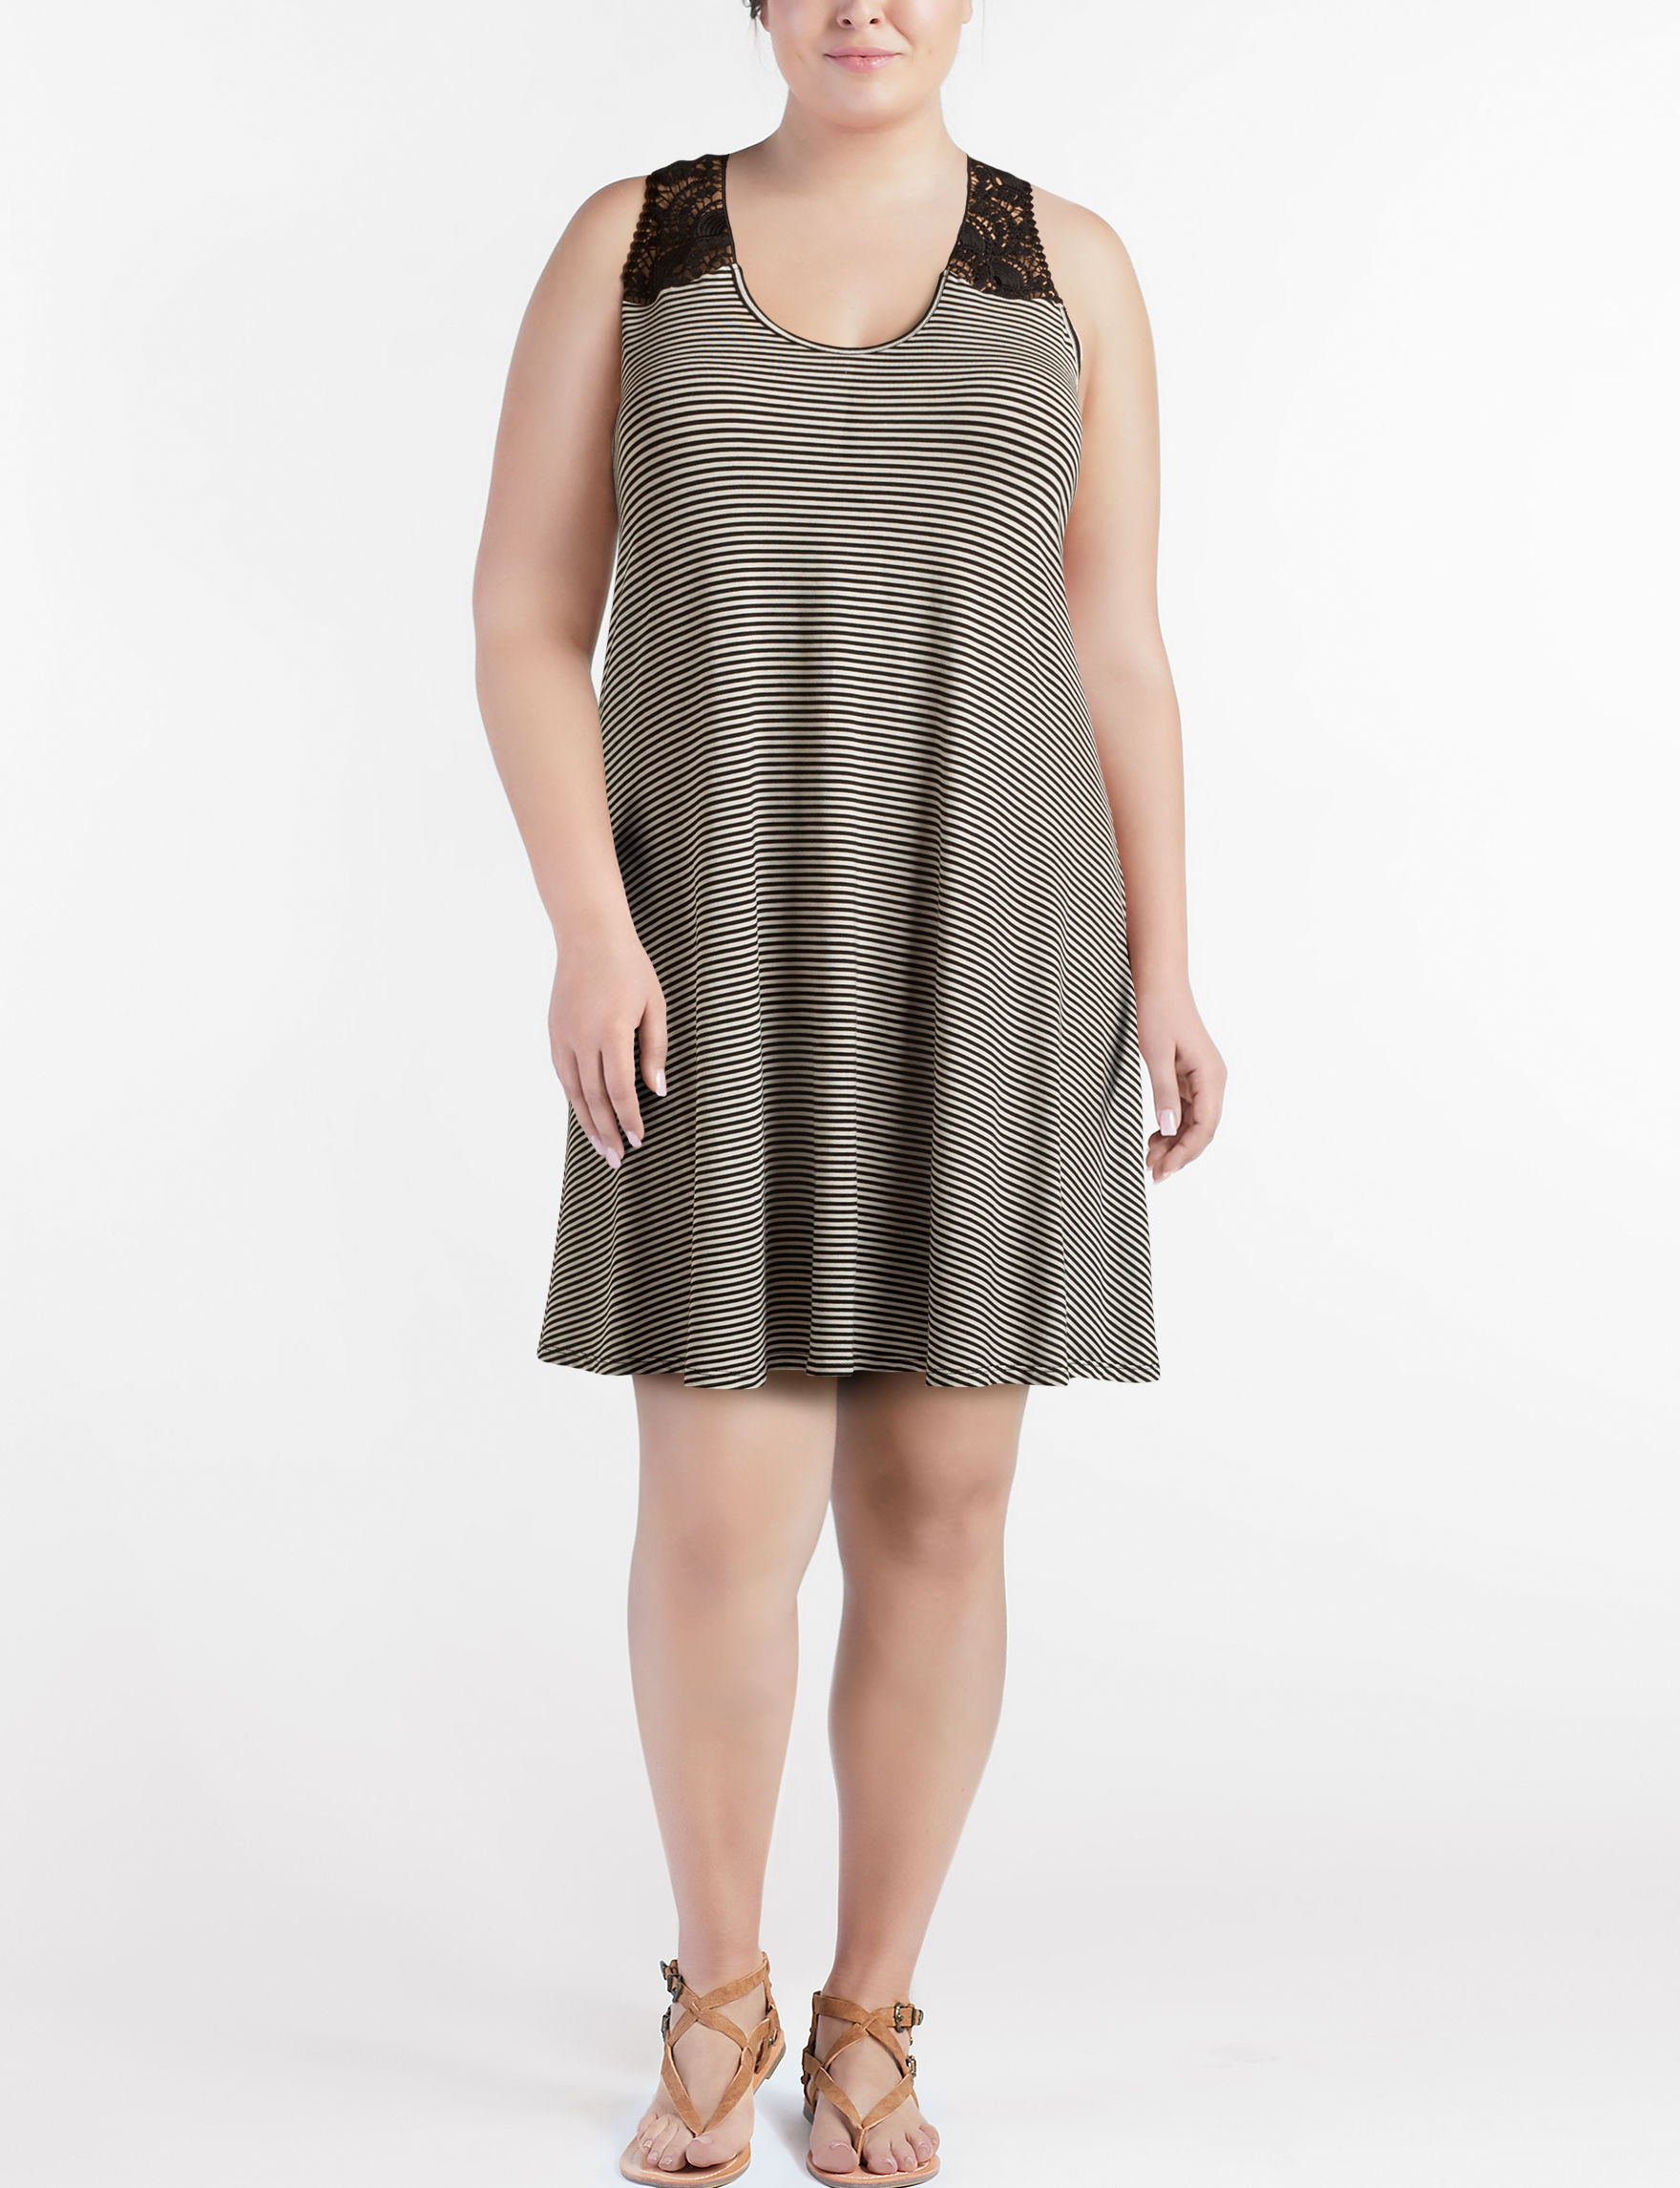 Wishful Park Black / White Everyday & Casual A-line Dresses